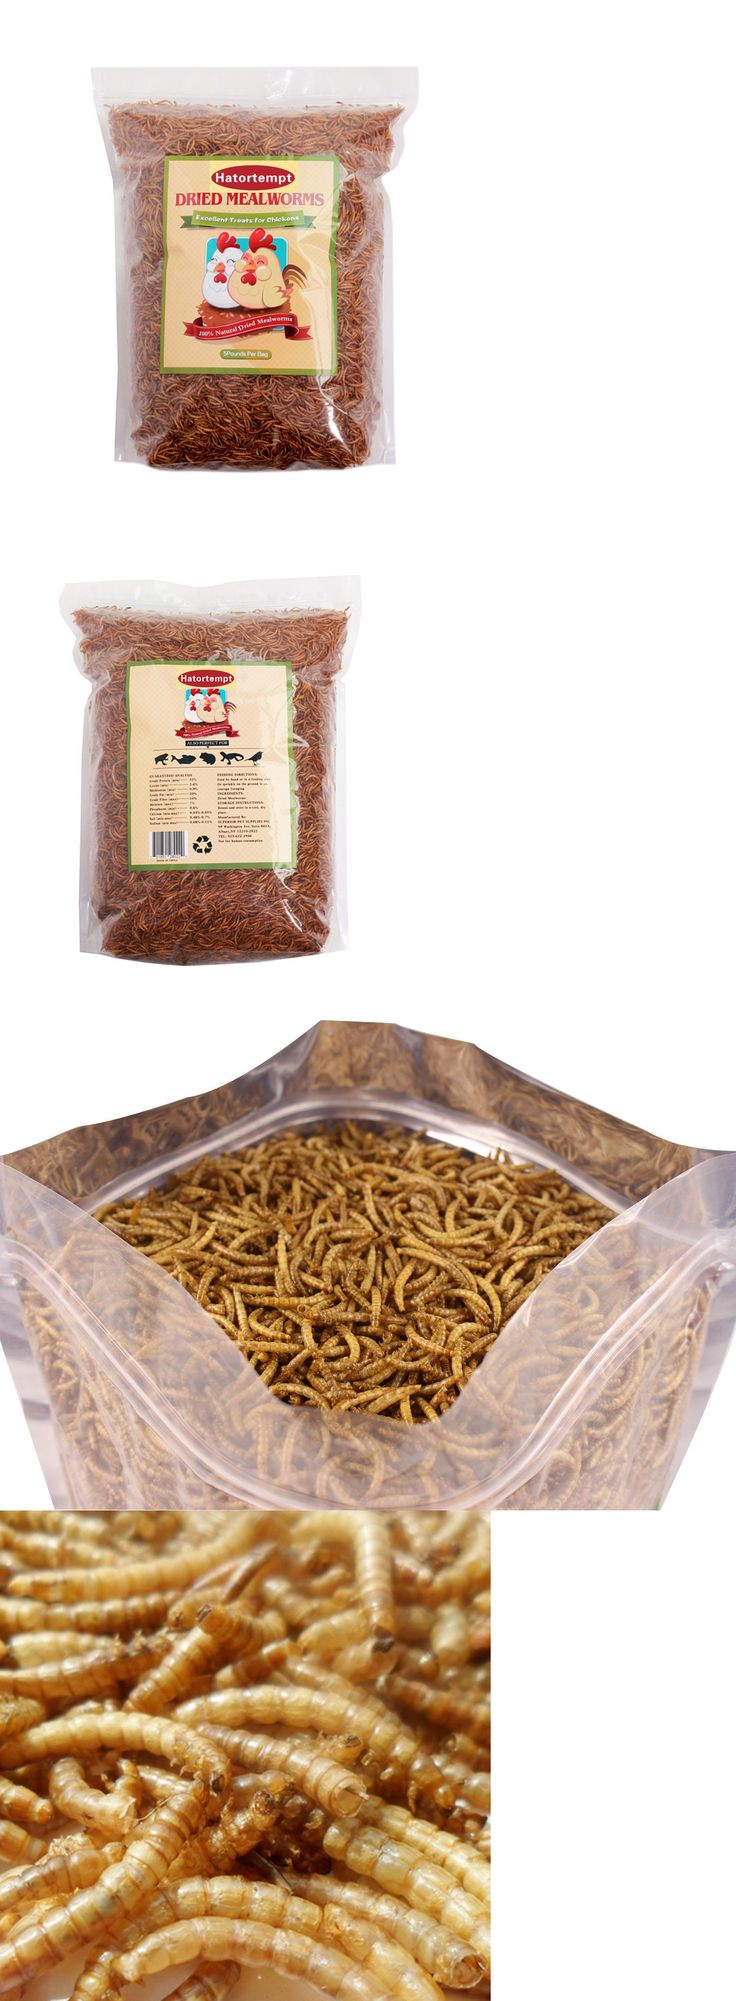 Backyard Poultry Supplies 177801: 5Lbs Bulk Dry Mealworms For Wild Birds Food Blue Bird Chickens -> BUY IT NOW ONLY: $33.99 on eBay!